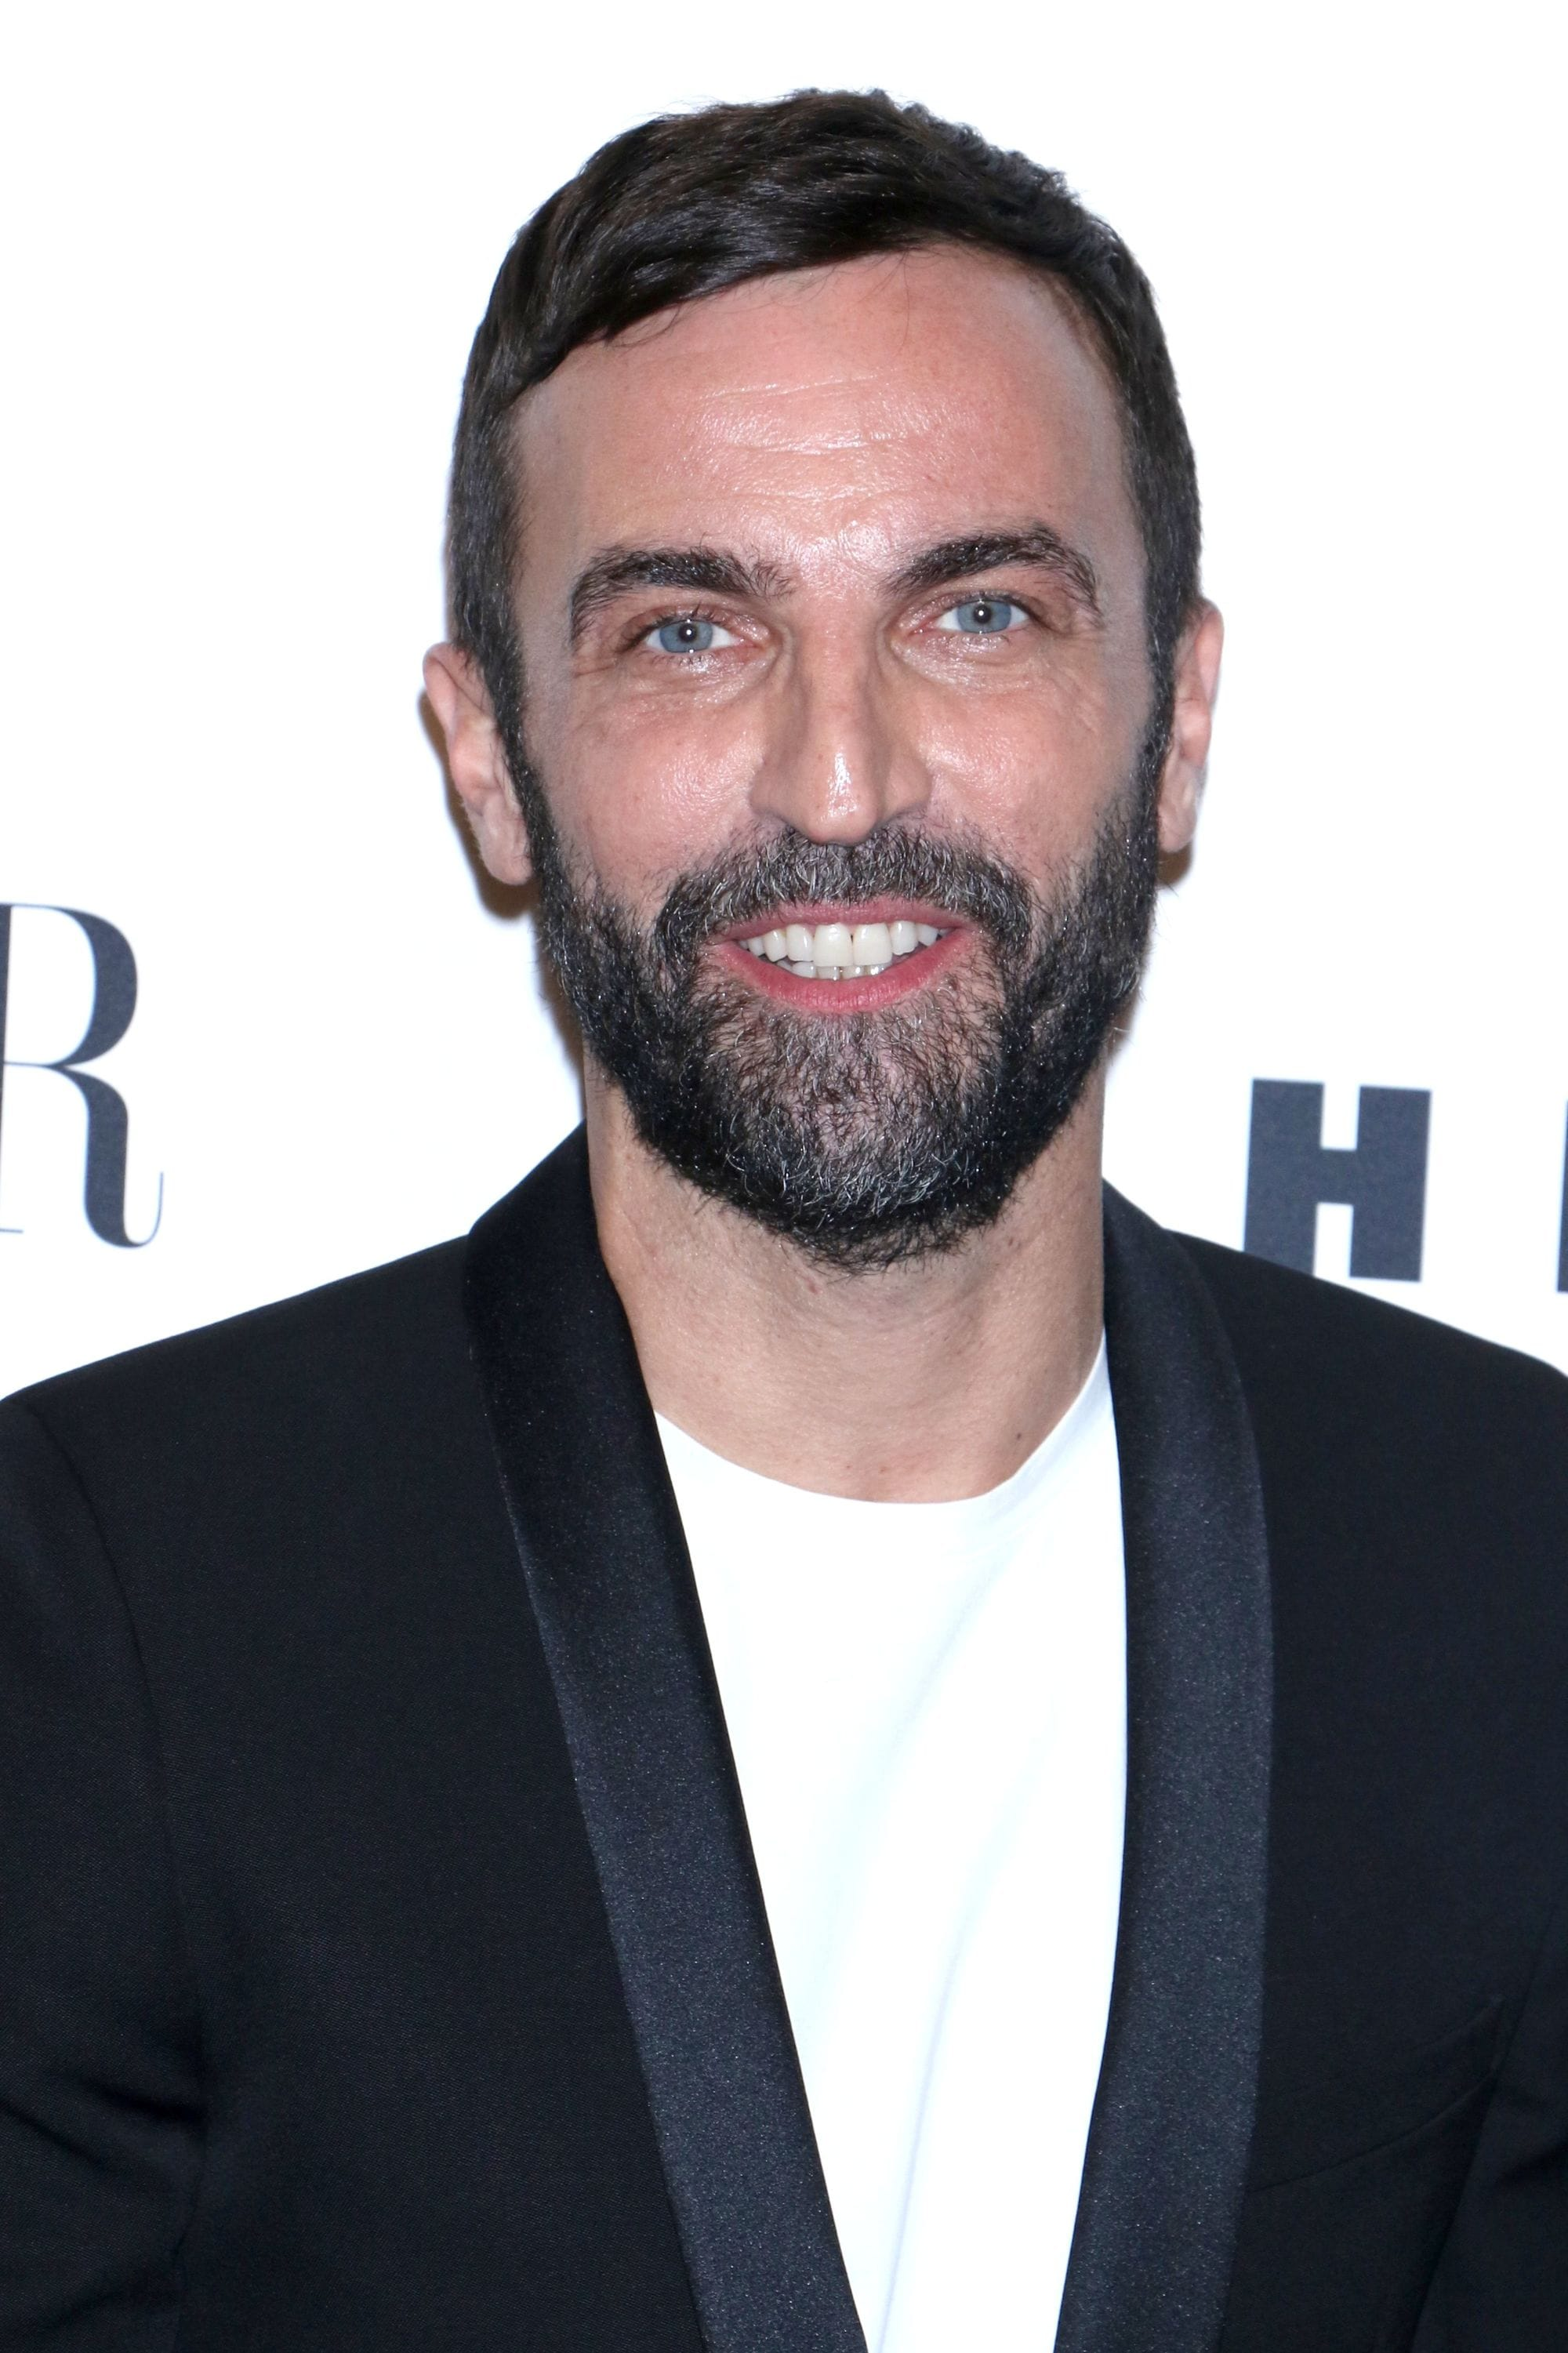 Hairstyles for men with thin hair: Nicolas Ghesquiere with short dark hair and a comb over hairstyle.